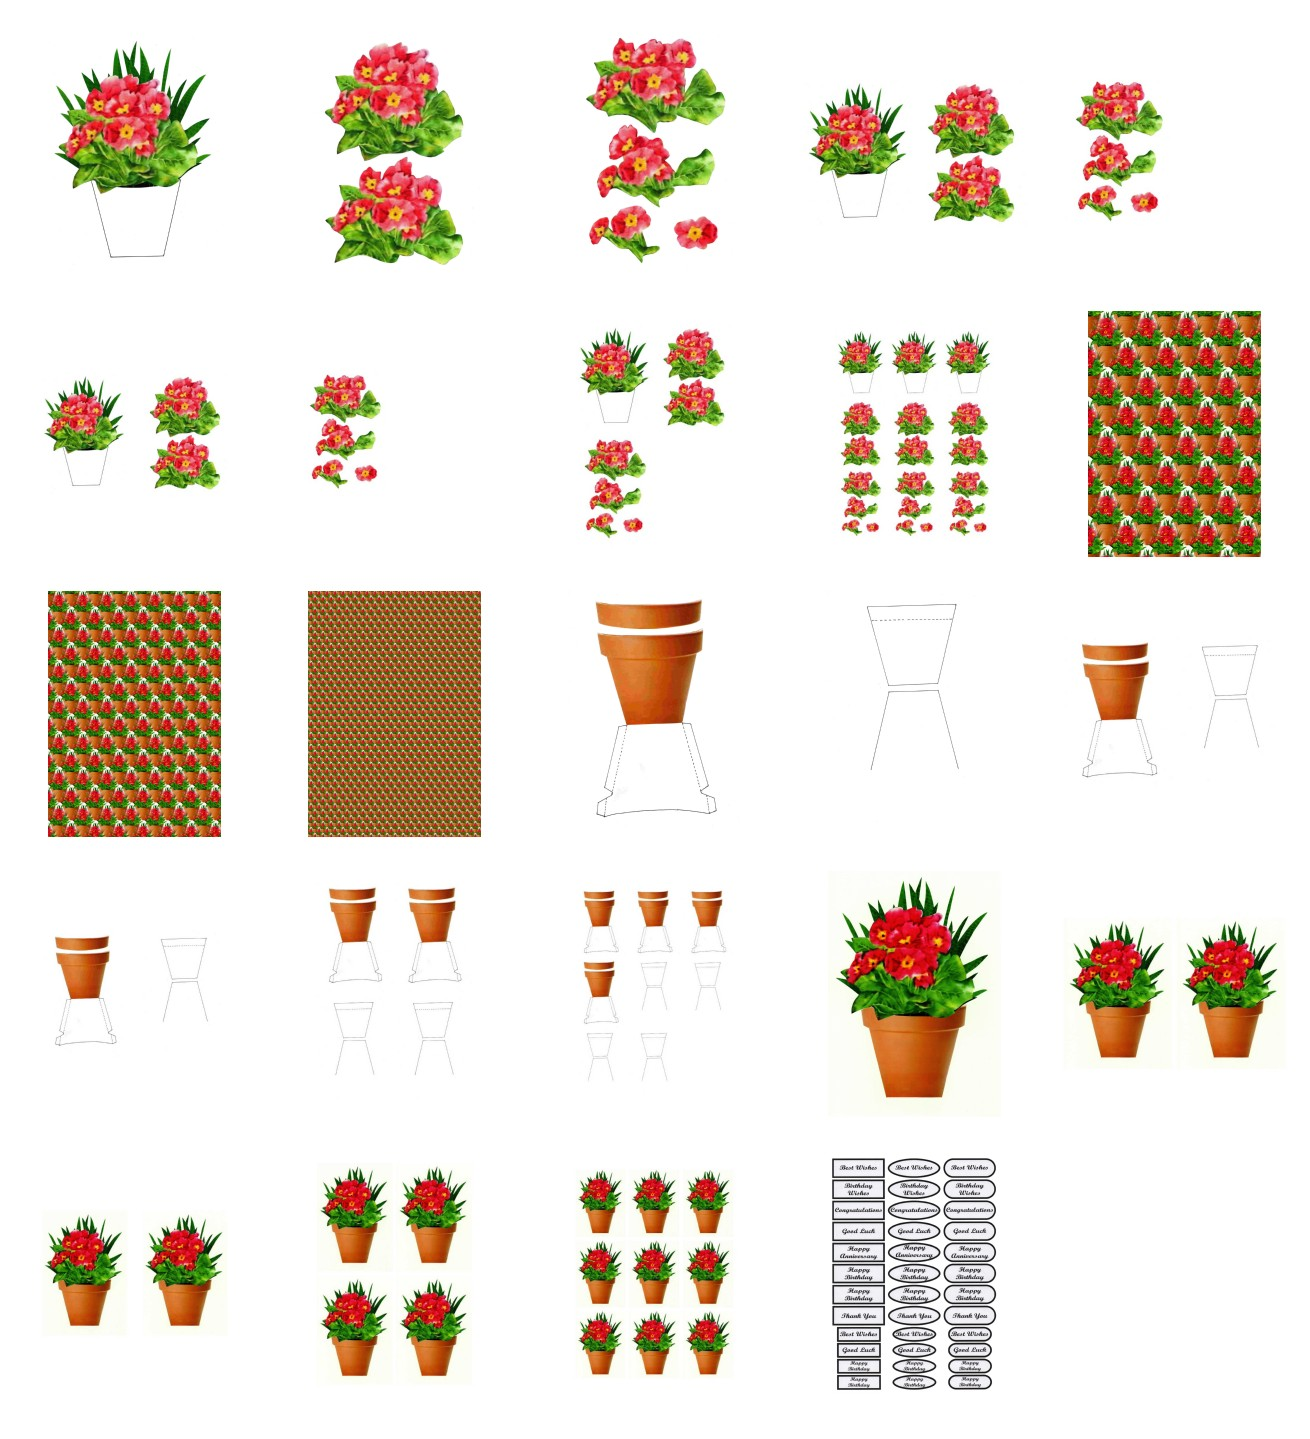 Spring Polyanthus Flowers - 25 Pages to Download